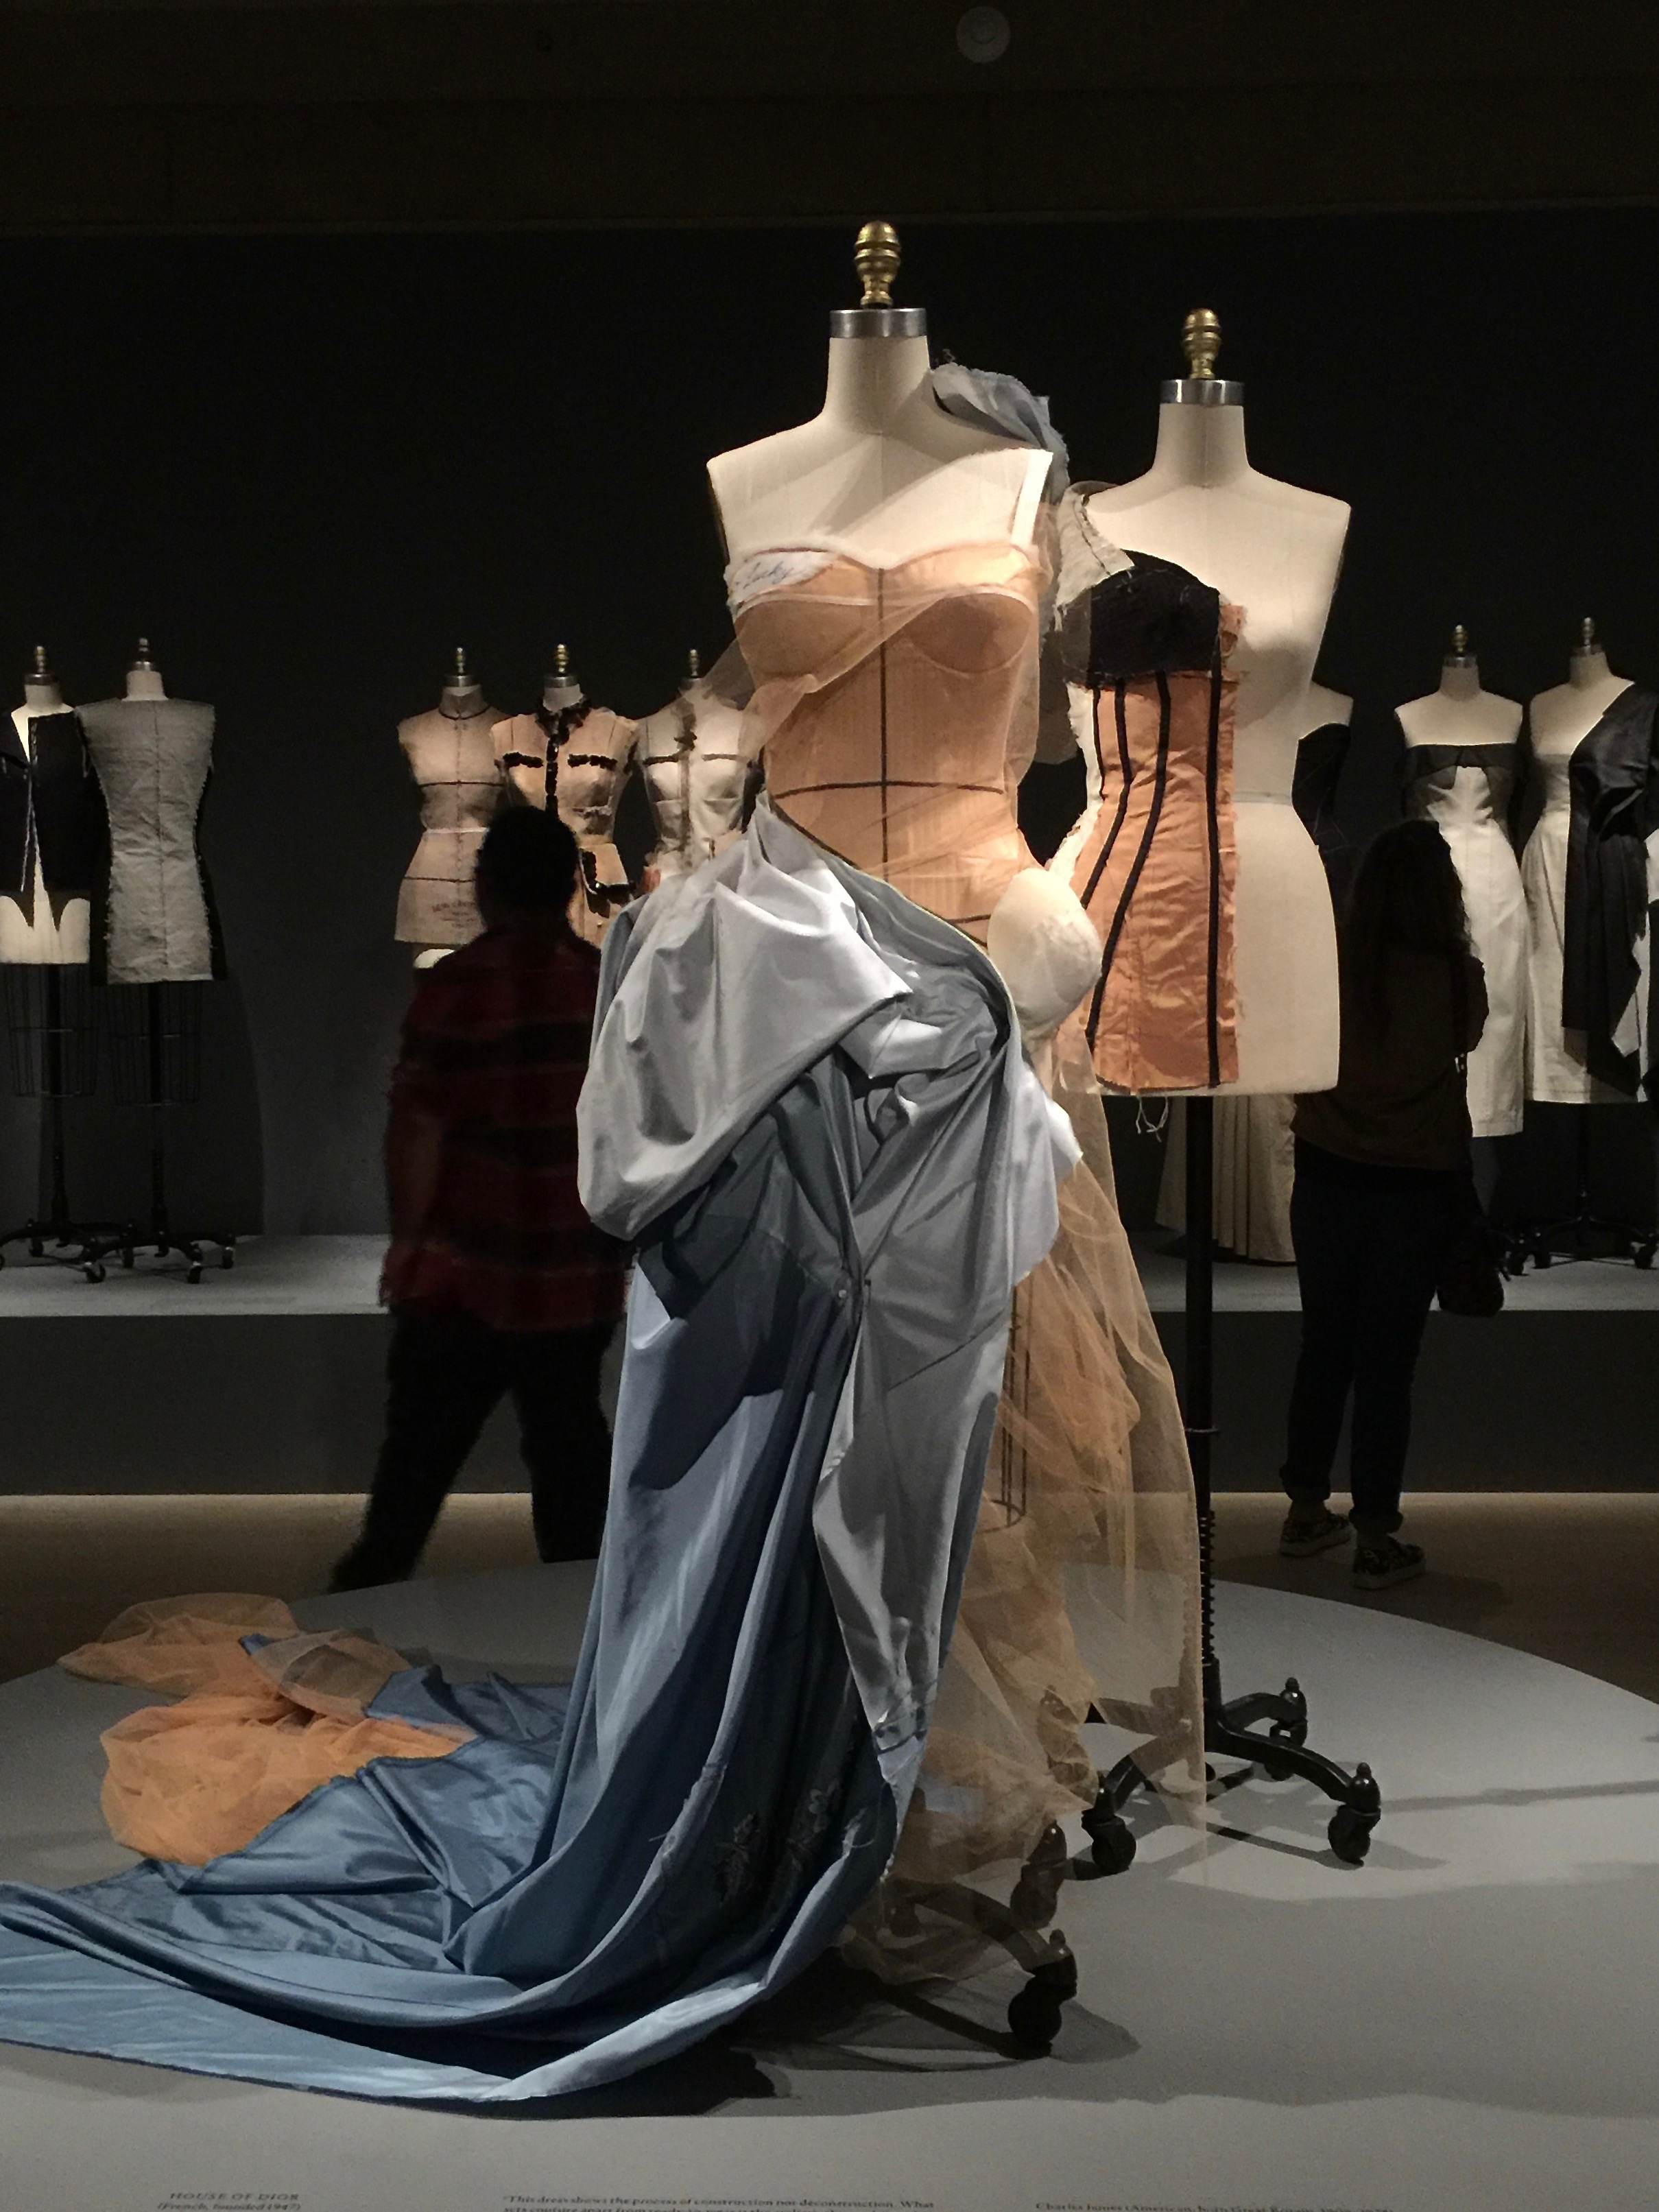 HOUSE OF DIOR, John Galliano ENSEMBLE, Autumn/Winter 2005-6, haute couture  Machine-sewn nude silk satin, hand-stitched white polyester batting, hand-draped and hand-basted nude silk net and hand-pieced-dyed blue silk taffeta, hand-embroidered with clear glass beads, opalescent rhinestones, blue and ivory chenille, and silver metal cord and strips